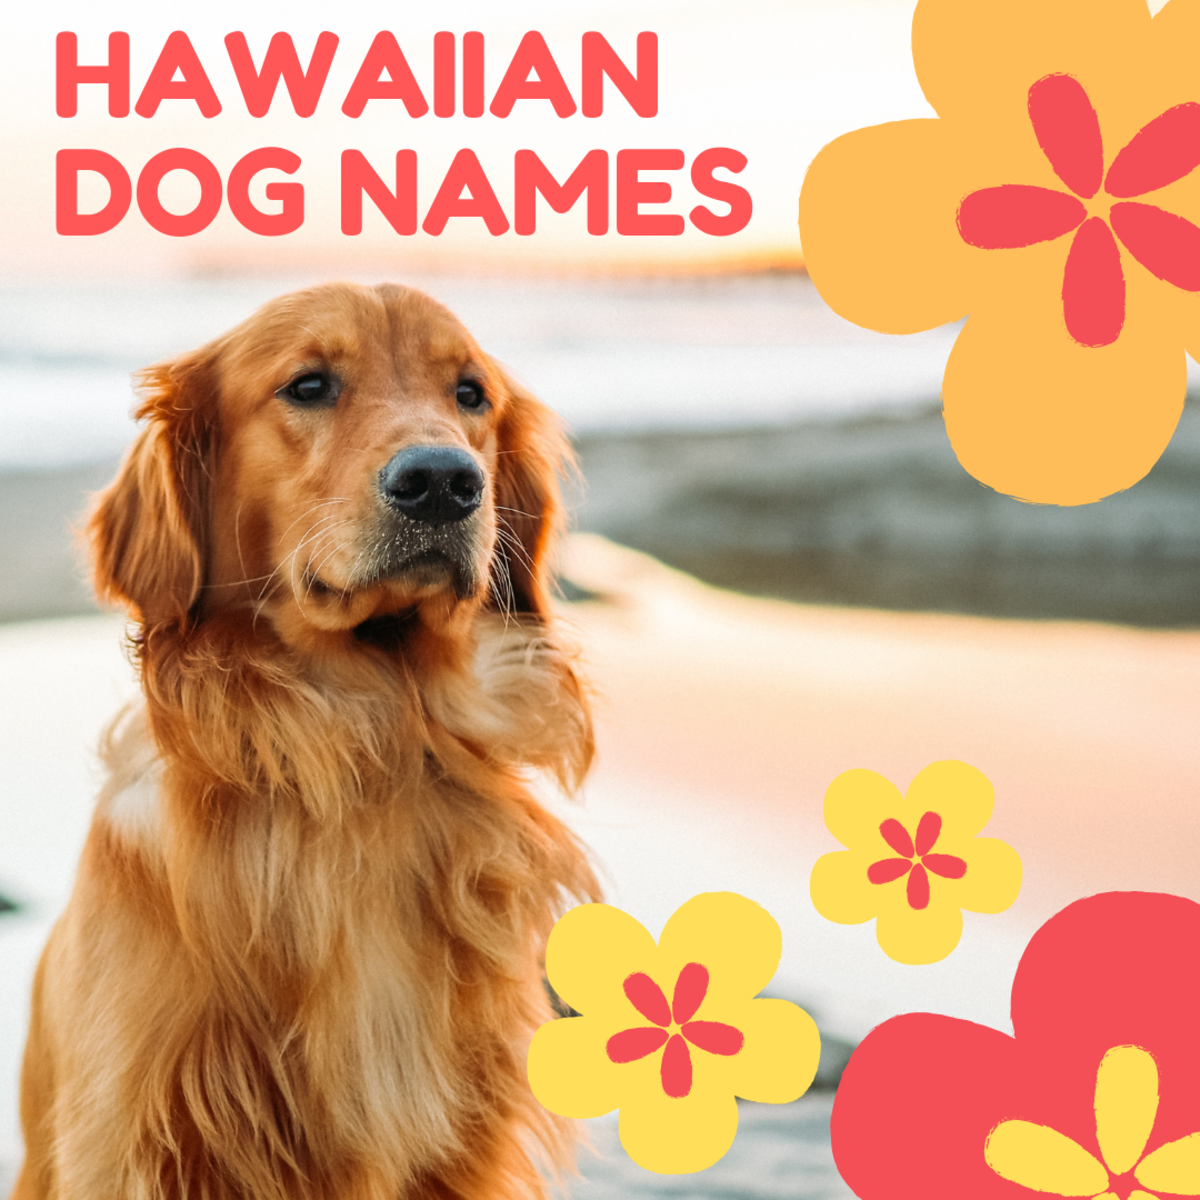 100+ Beautiful Hawaiian Dog Name Ideas